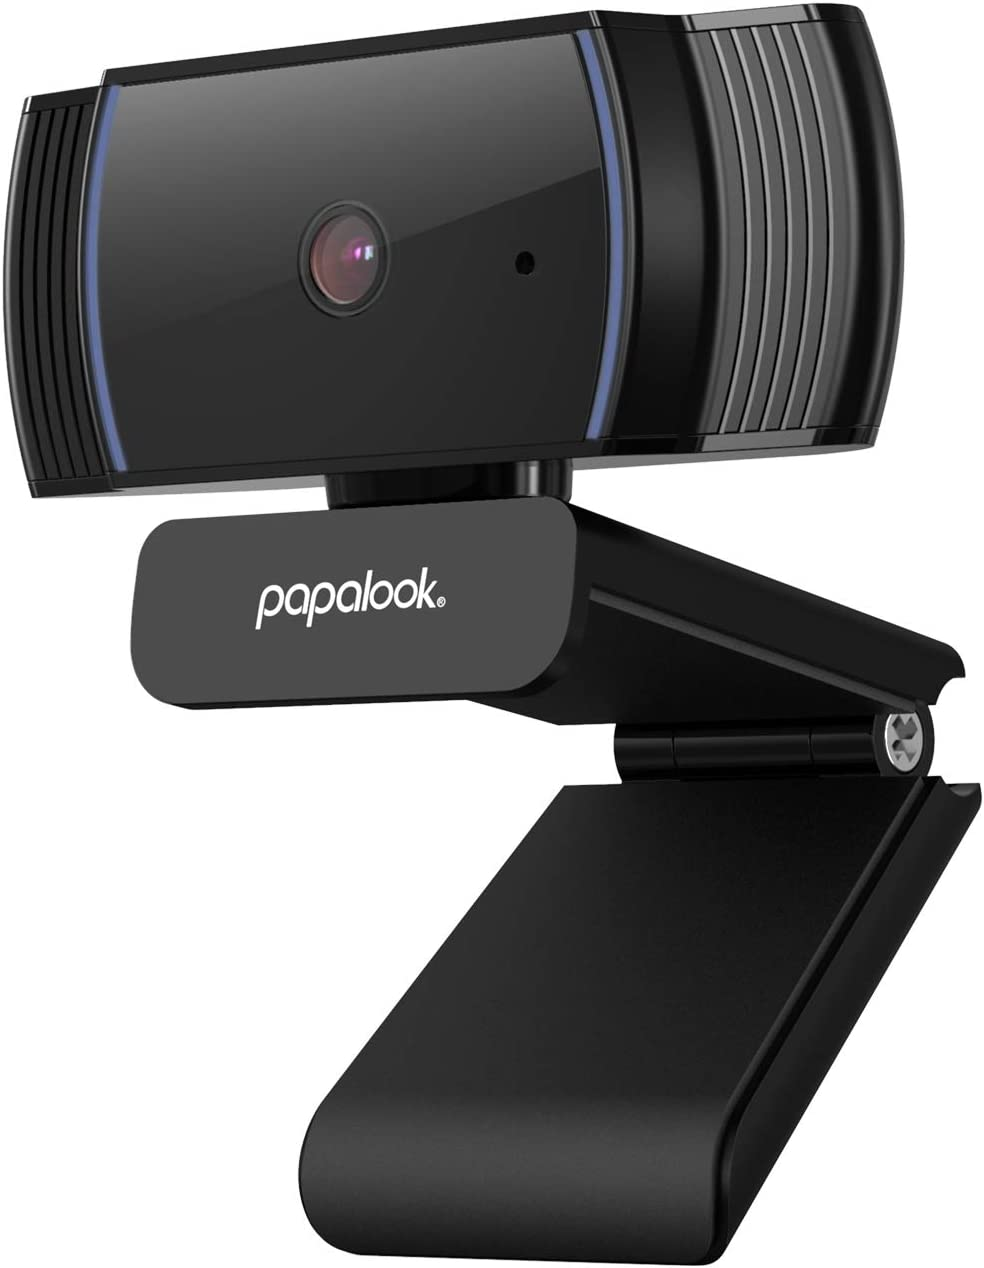 Webcam 1080P, PAPALOOK AF925 USB Streaming Web Camera with AutoFocus and Noise Reduction Microphone, for Laptop Monitor Mac PC, OBS, Skype, YouTube, Twitch